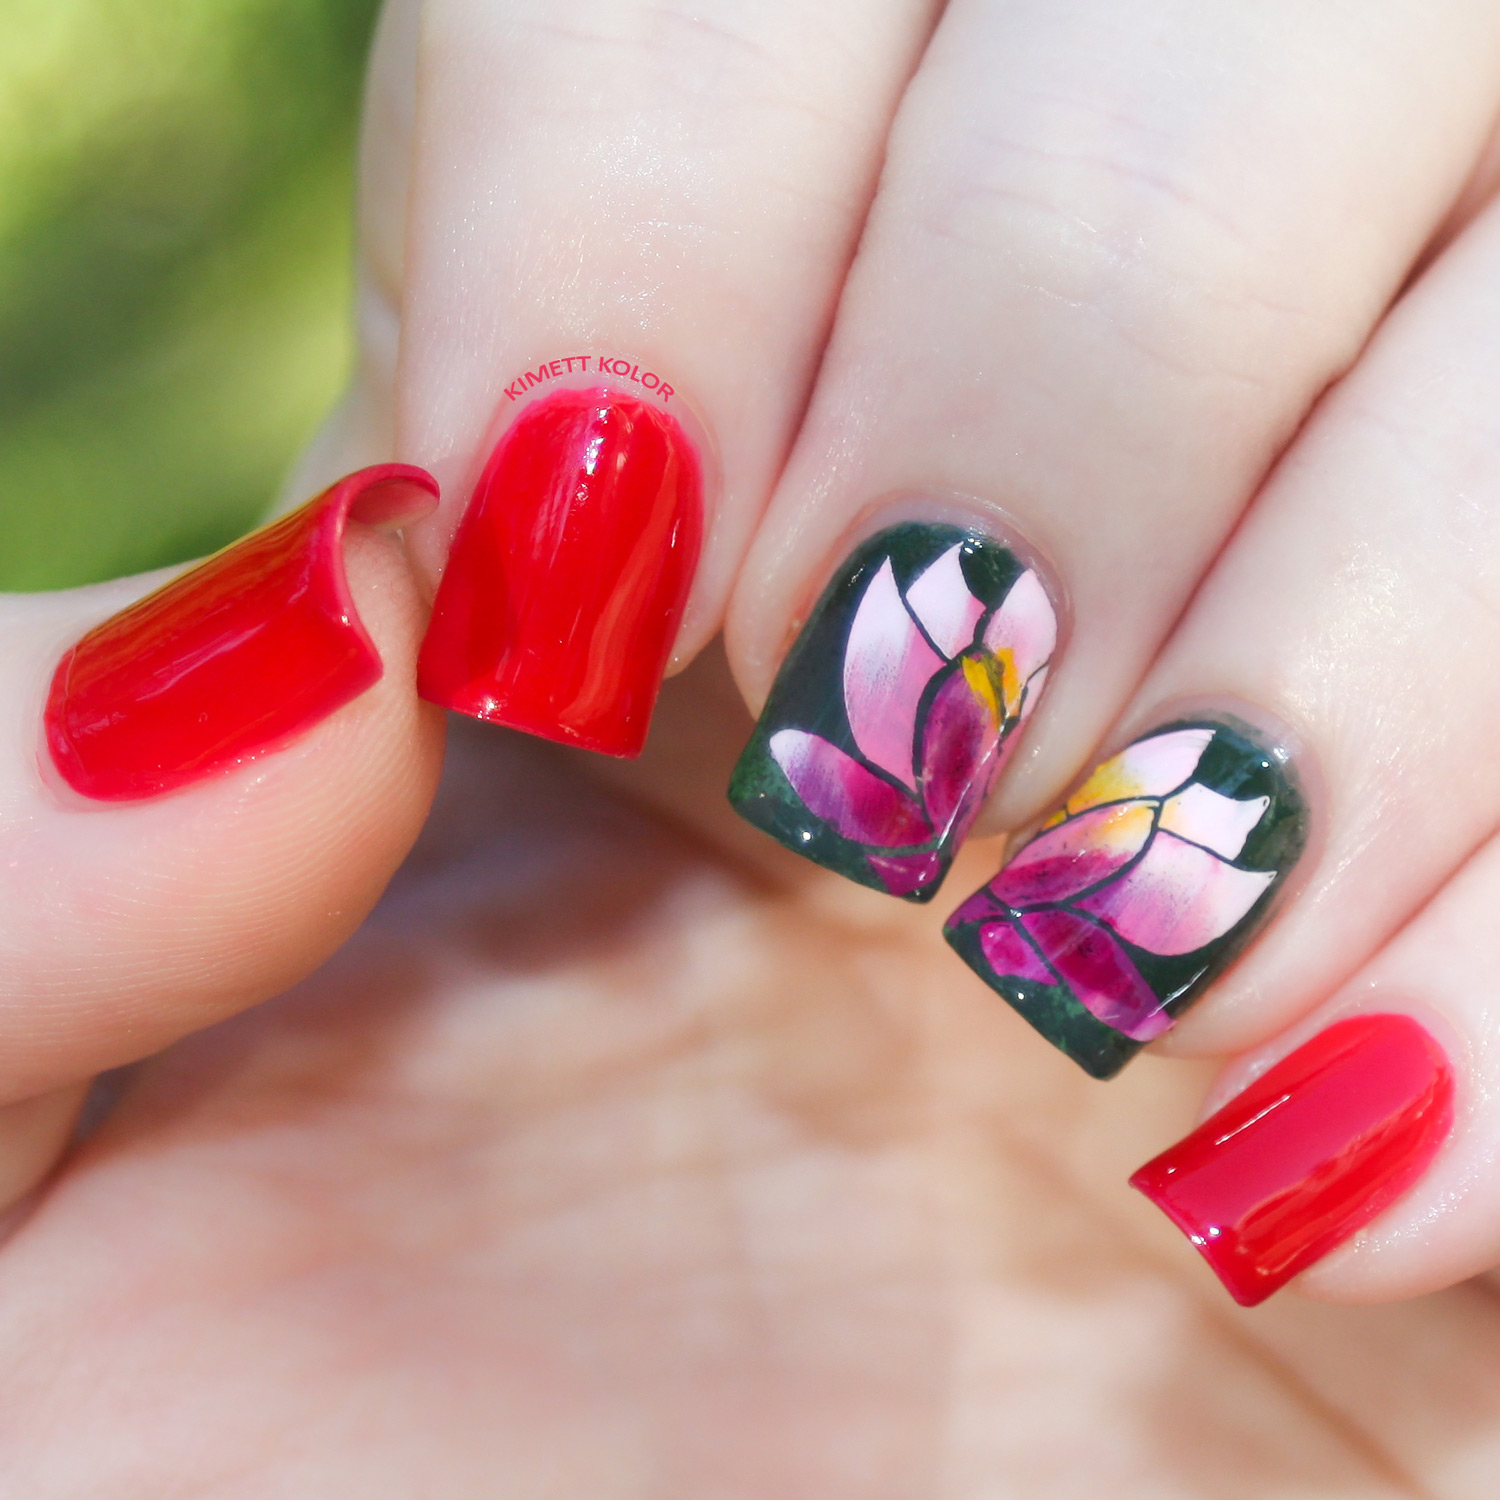 Ruby and Water Lily July Nail Art by KimettKolor